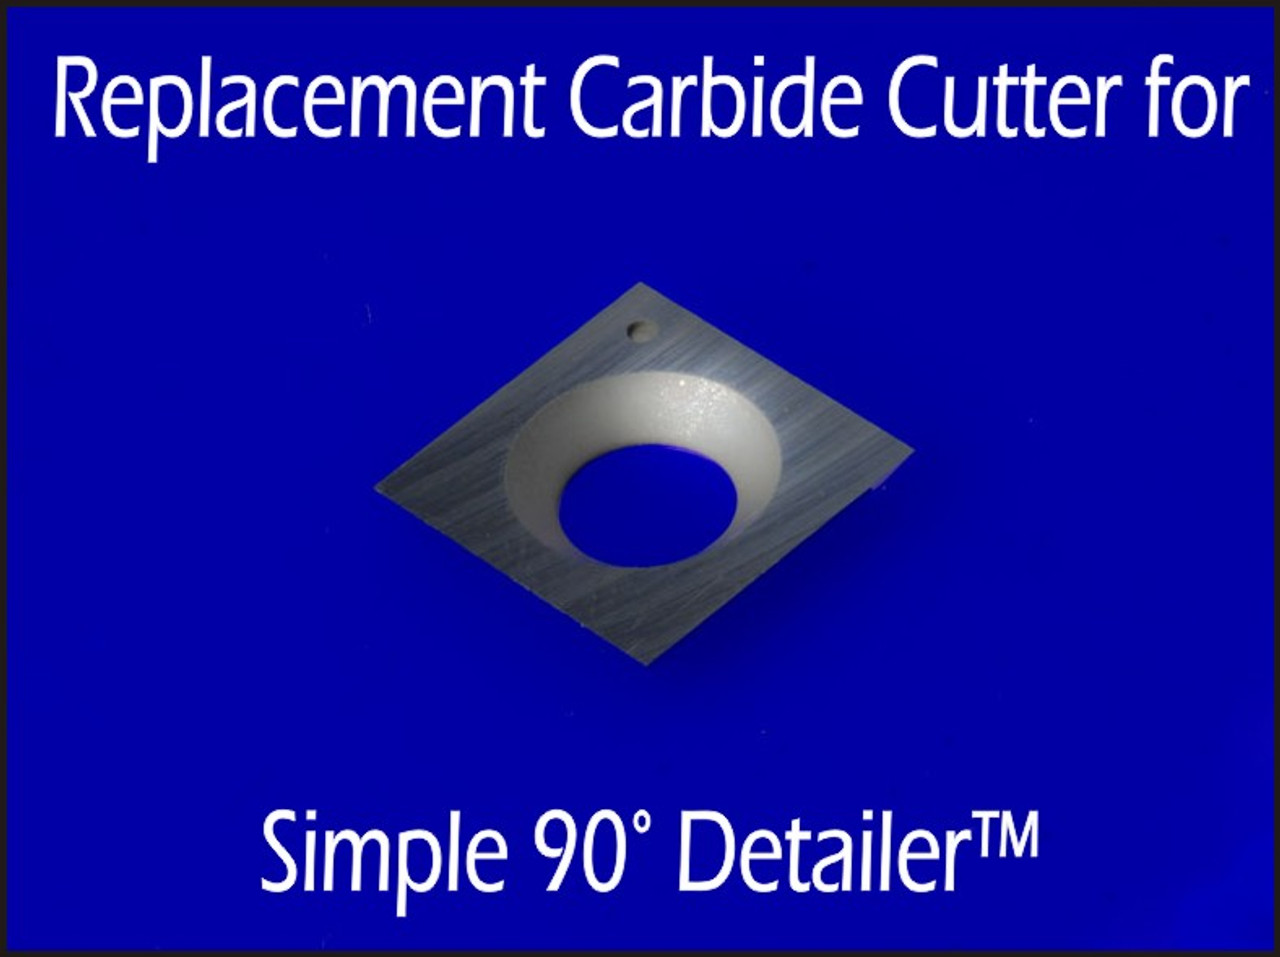 Cutter for tool engraved with S90D - Full Size Simple 90° Detailer